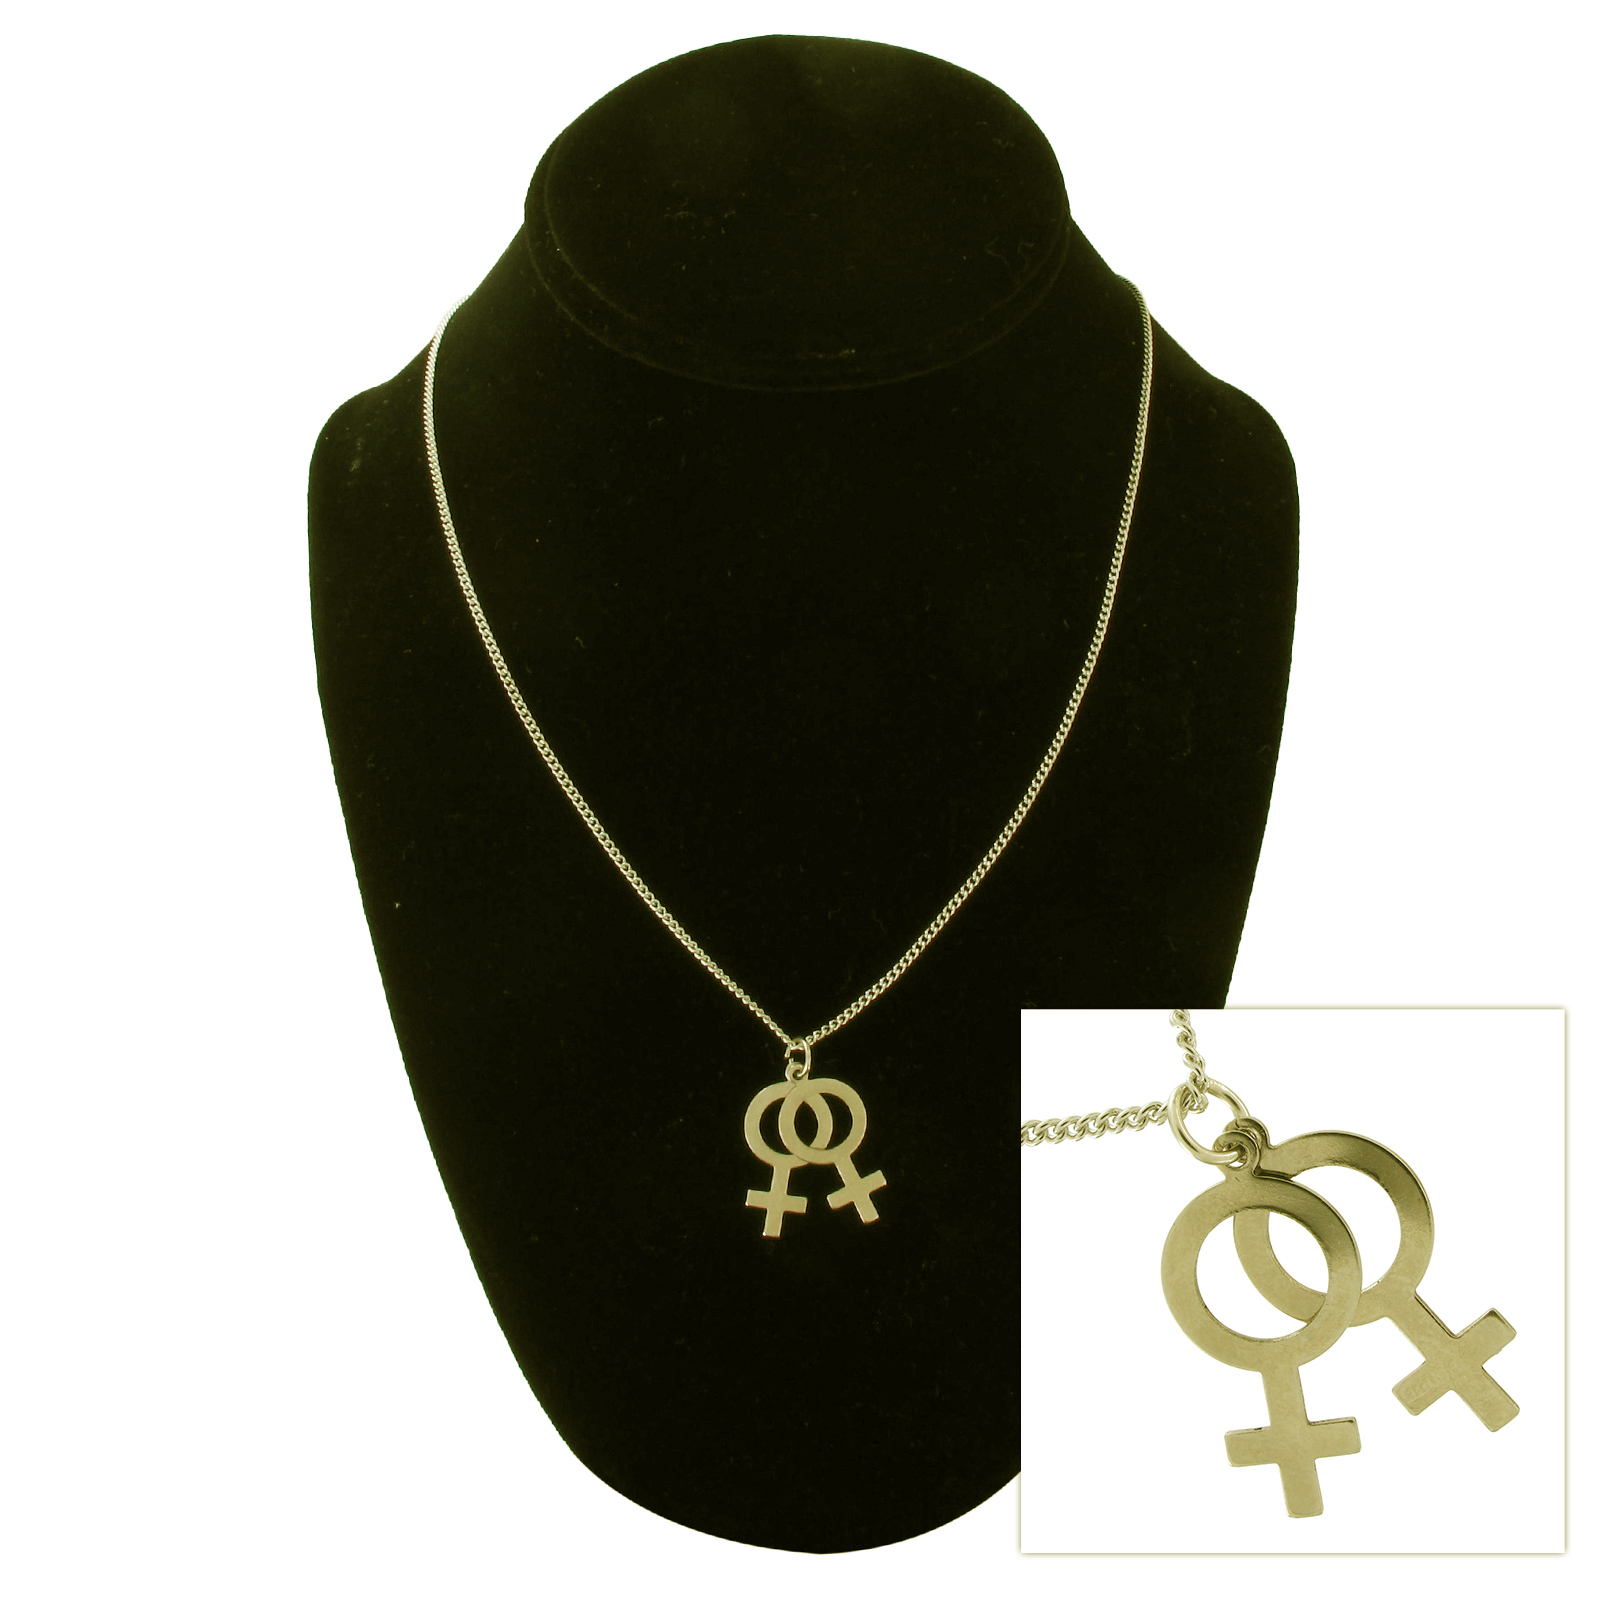 USA Made Gold Tone Lesbian Symbol Pendant Couple Necklace Thumbnail 1